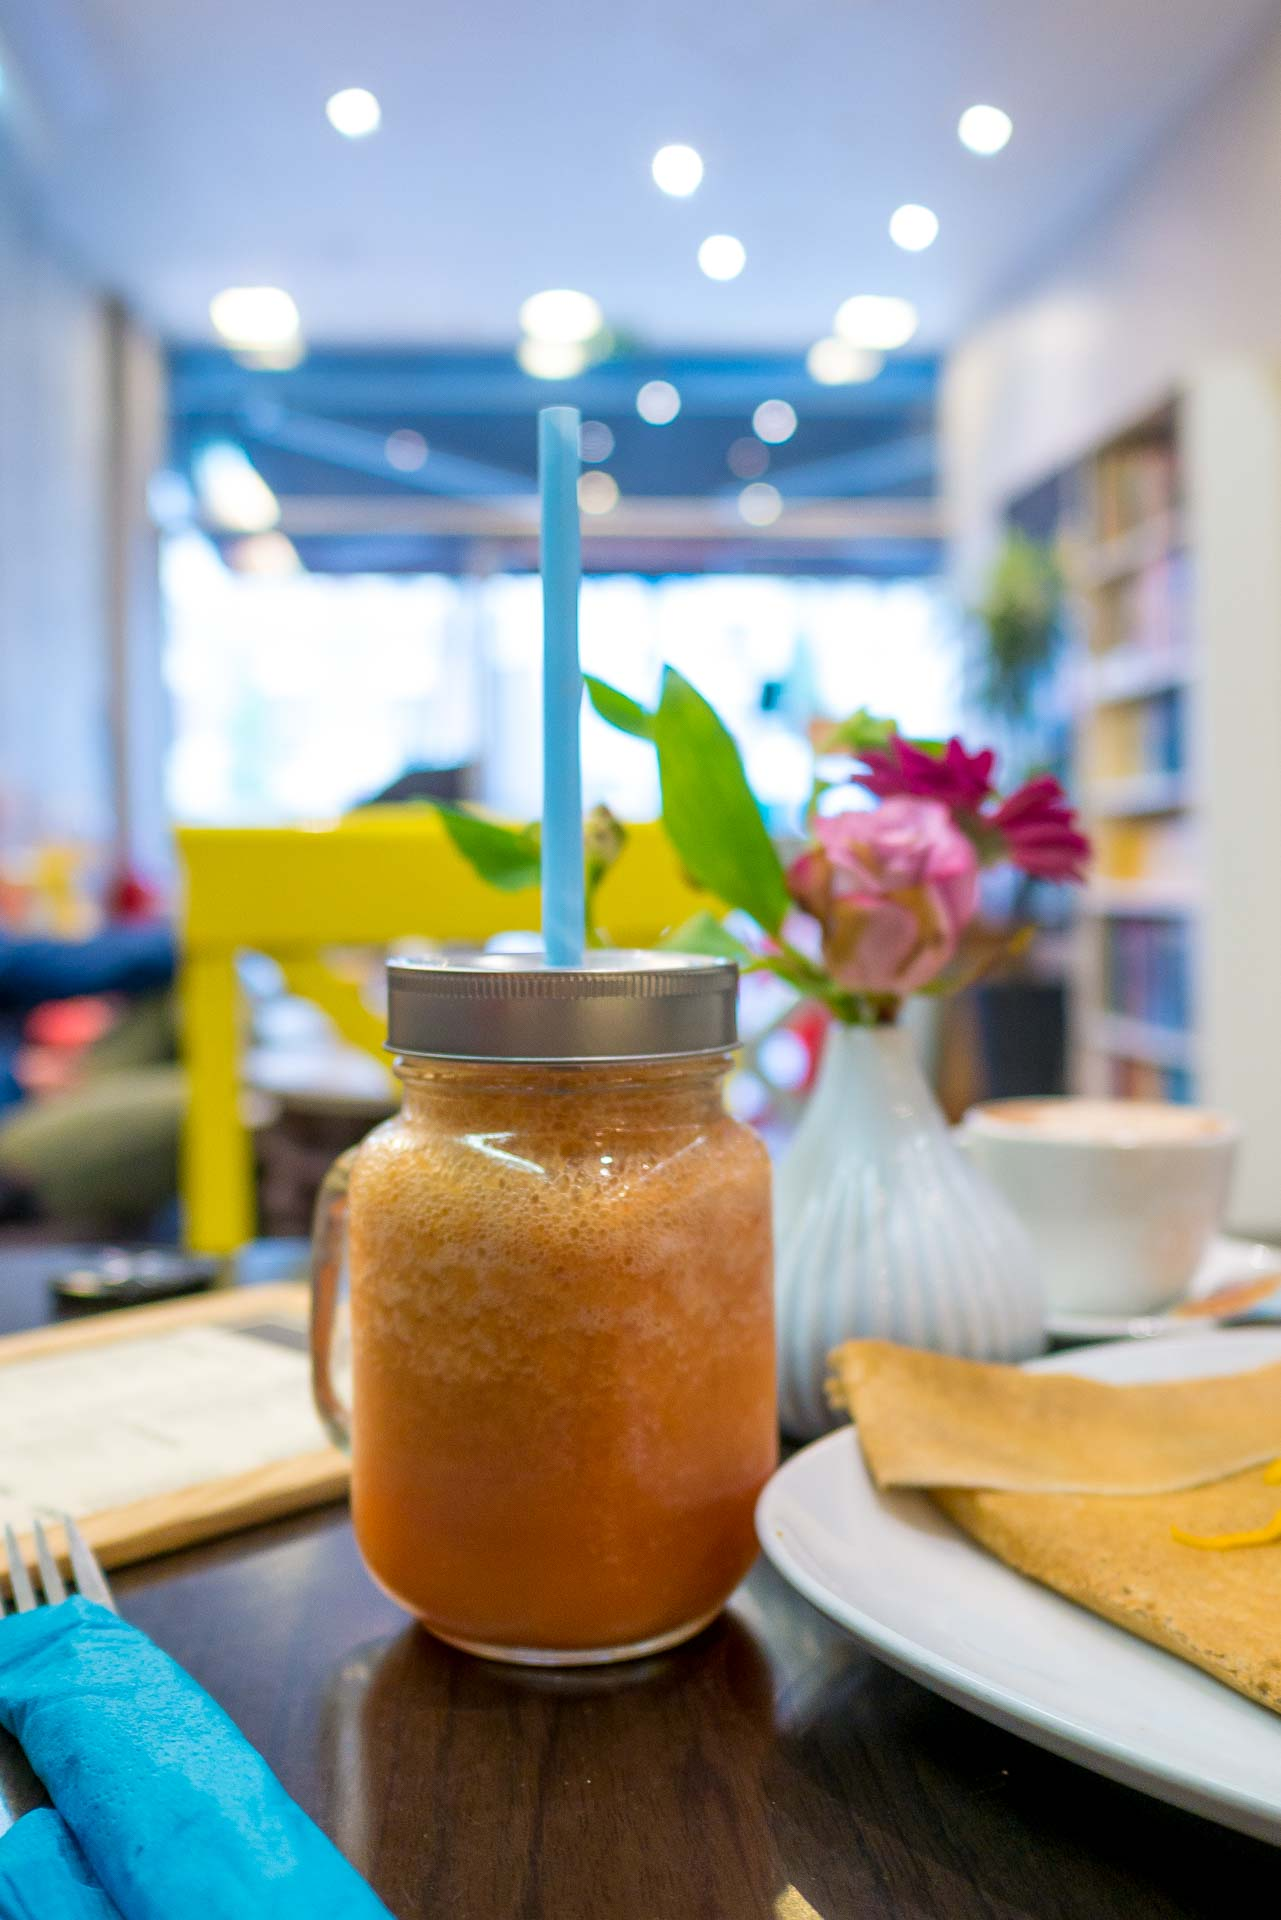 Lens Cafe L'autre Estaminet Smoothies-1